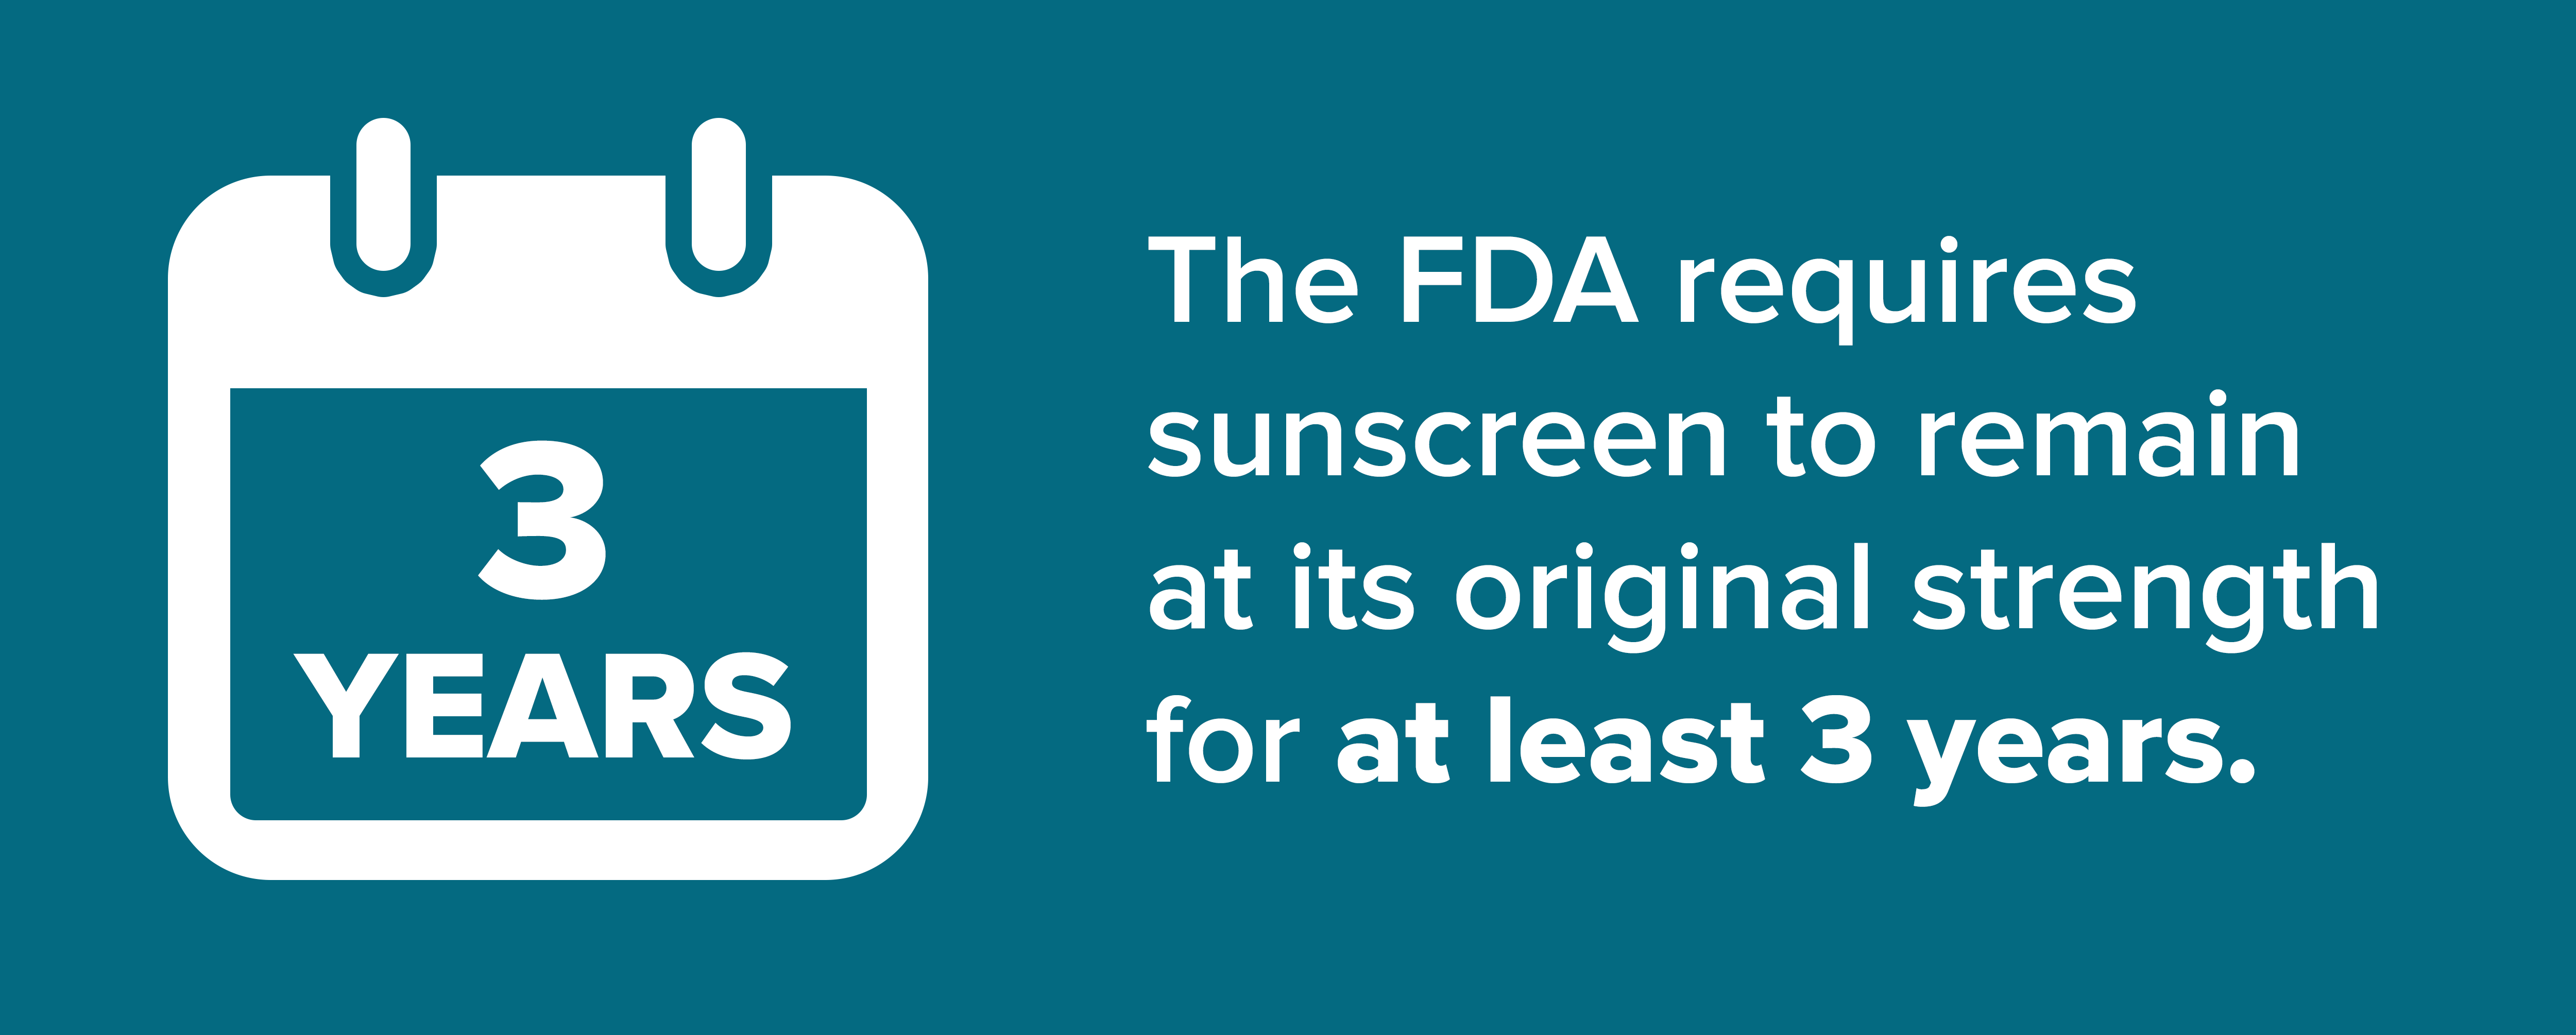 The FDA requires sunscreen to remain at its original strength for at least 3 years.